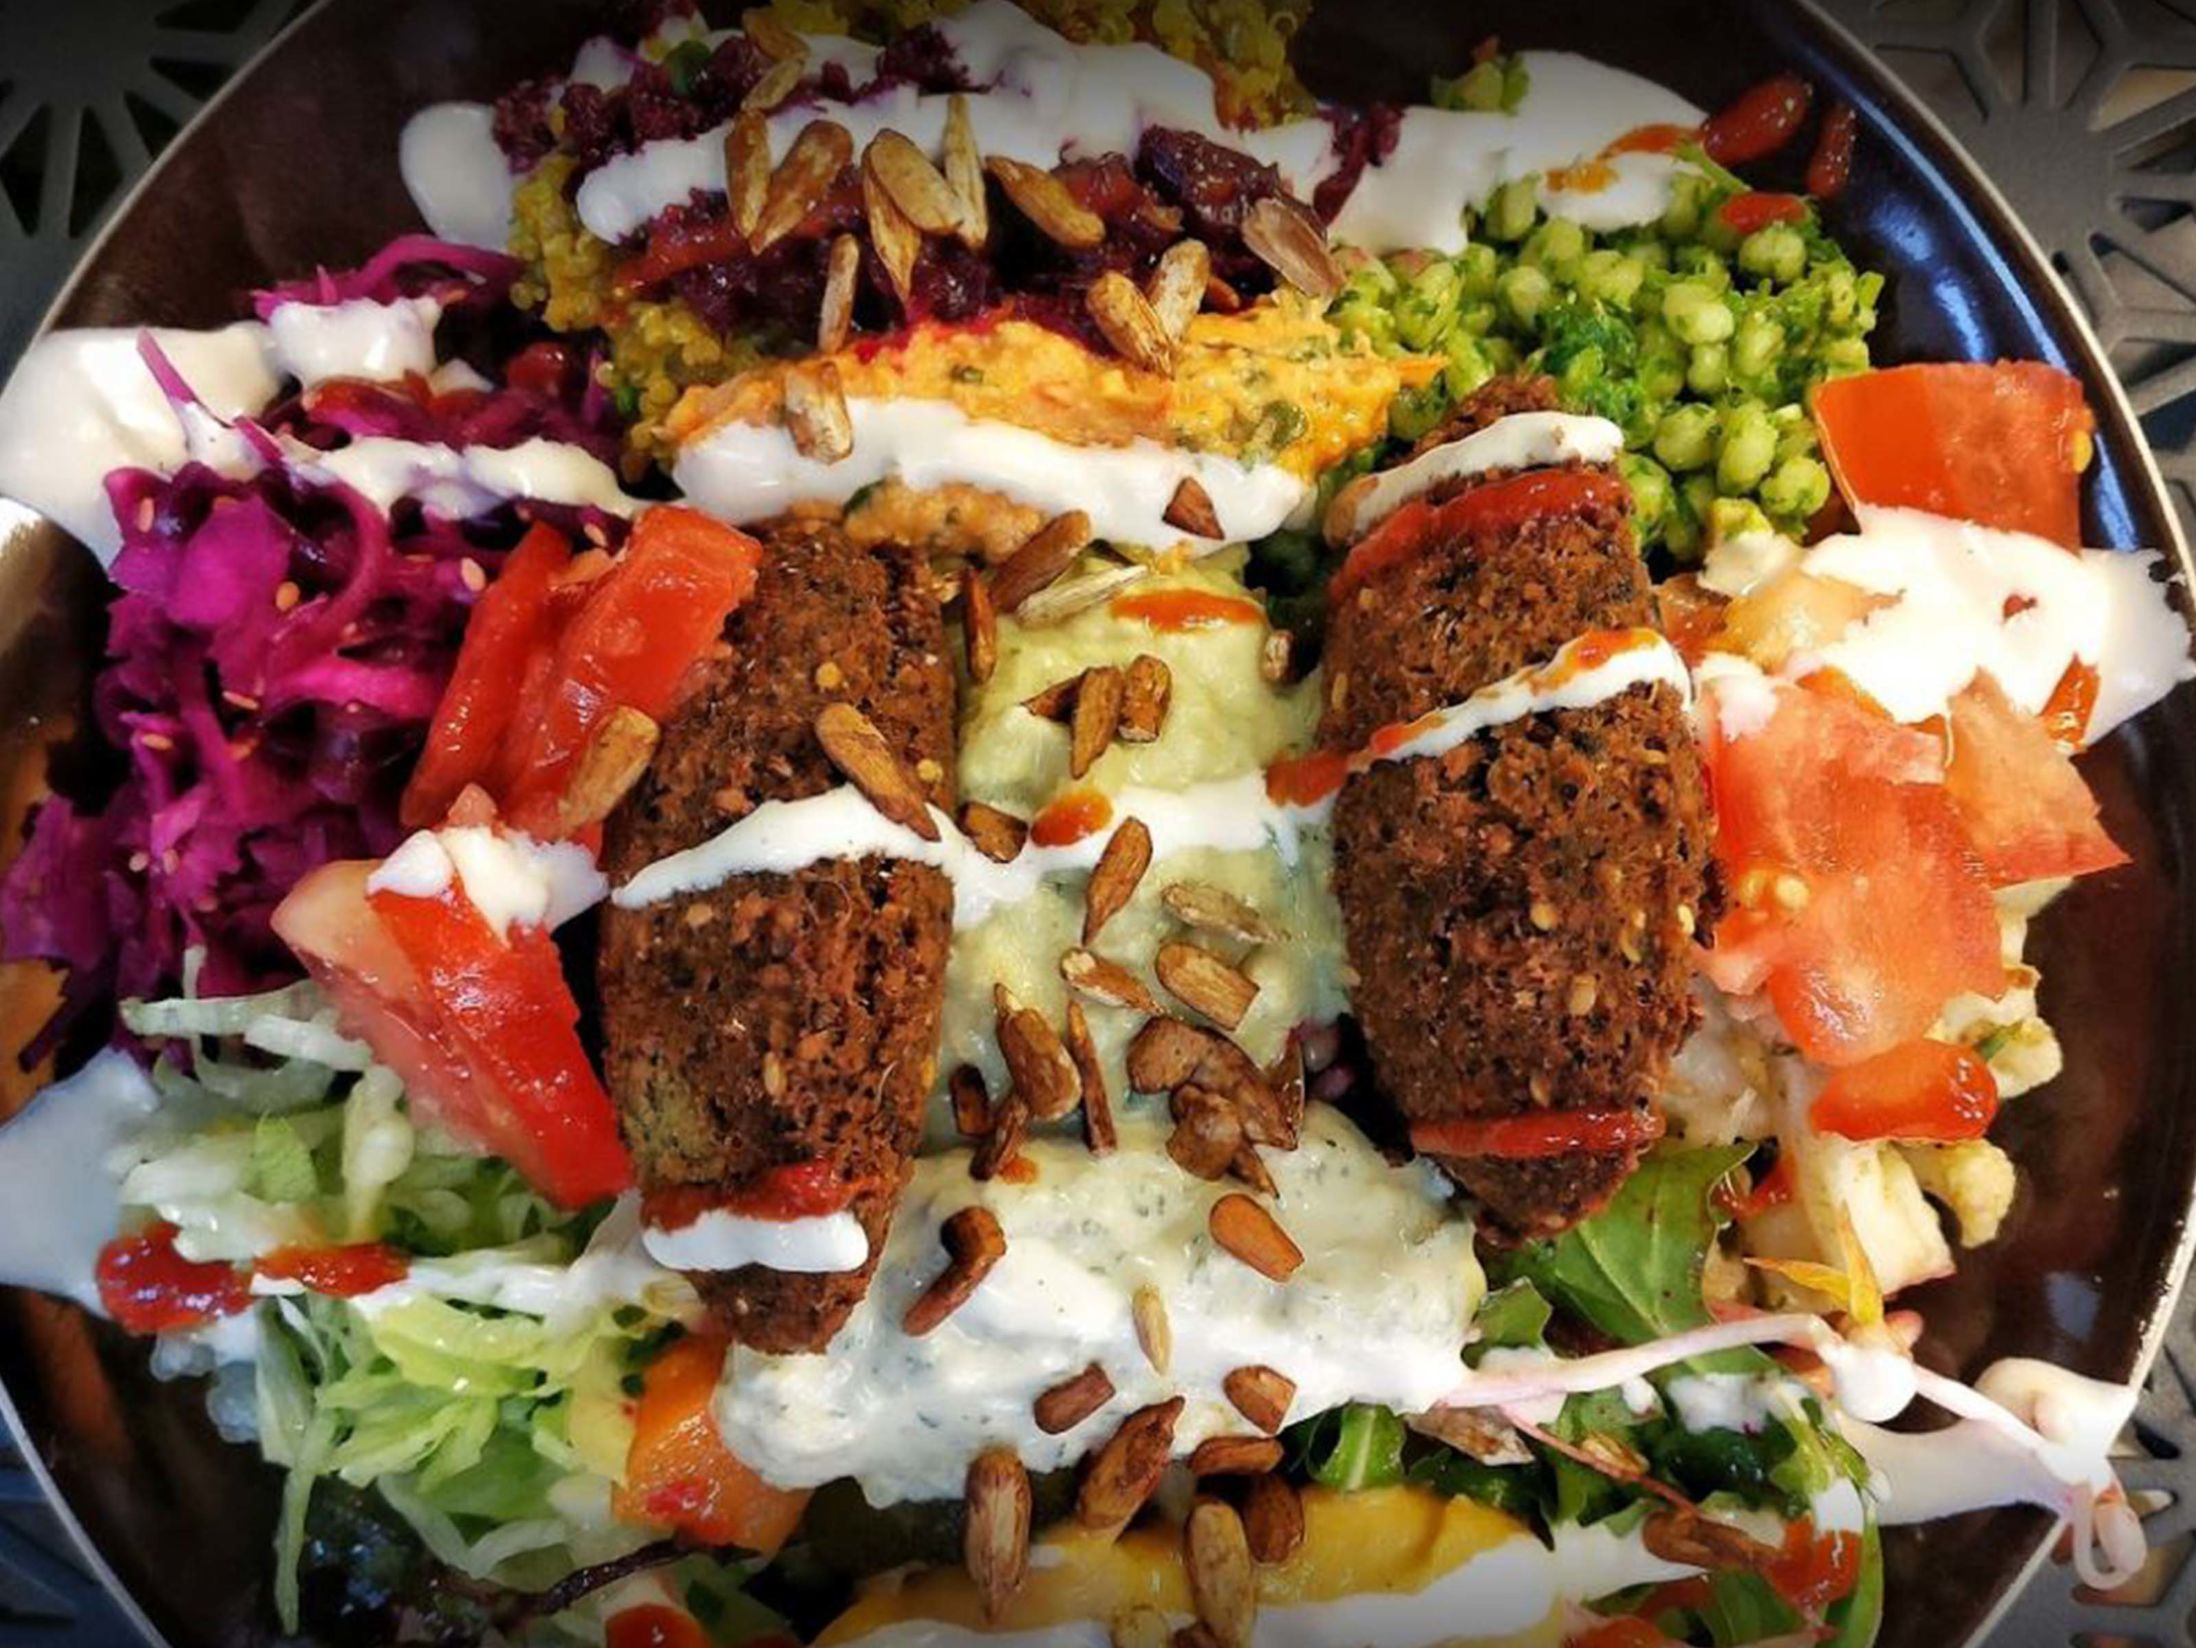 Best Vegan Restaurants in Brighton - Smorl's Houmous Falafel & Salad Bar